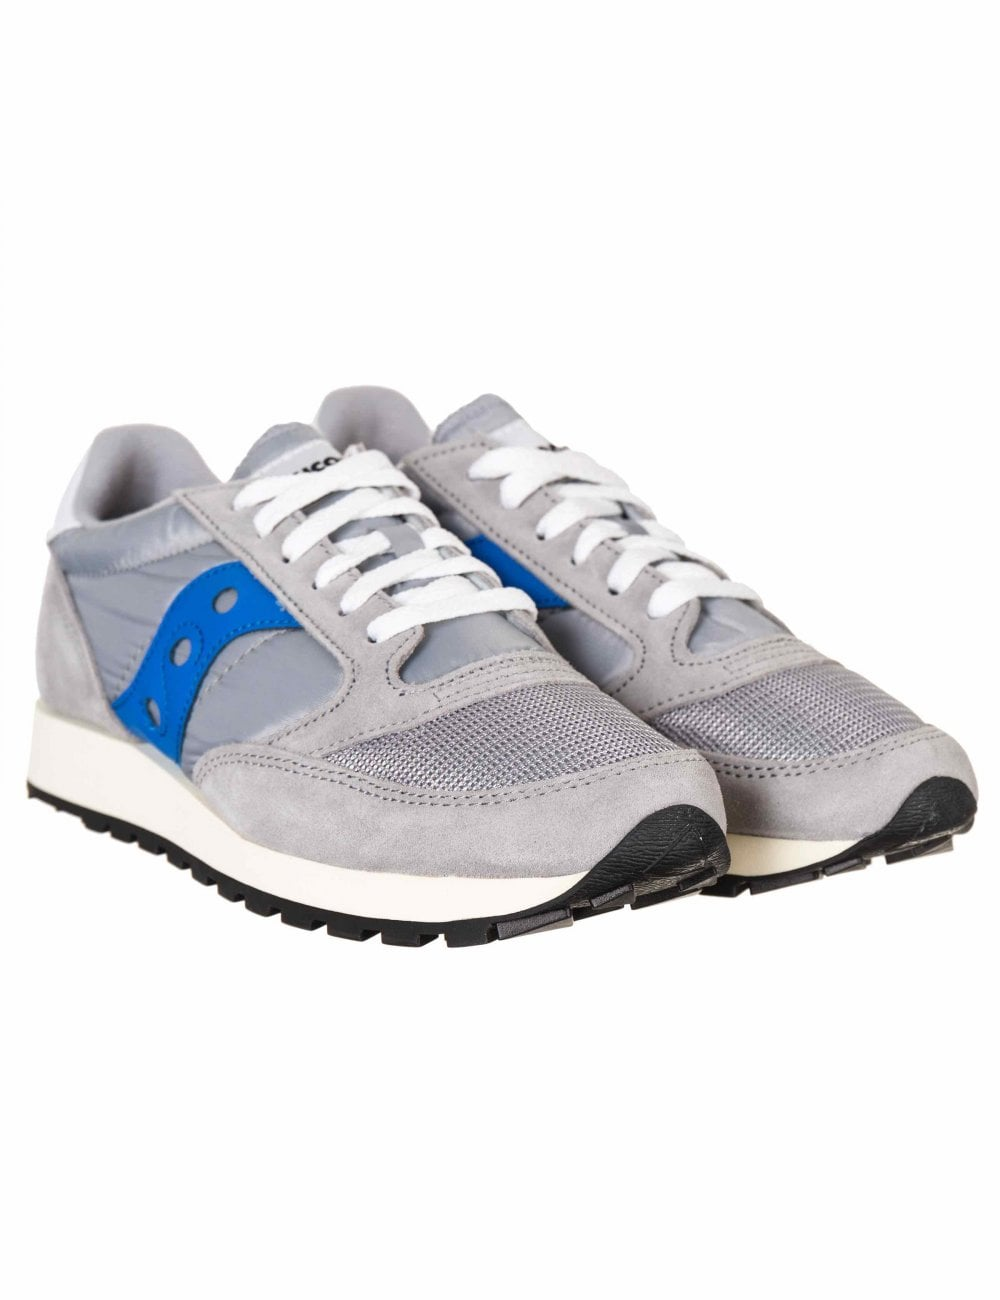 buy online e76c6 27ddd Jazz Vintage OG Trainers - Grey/Blue